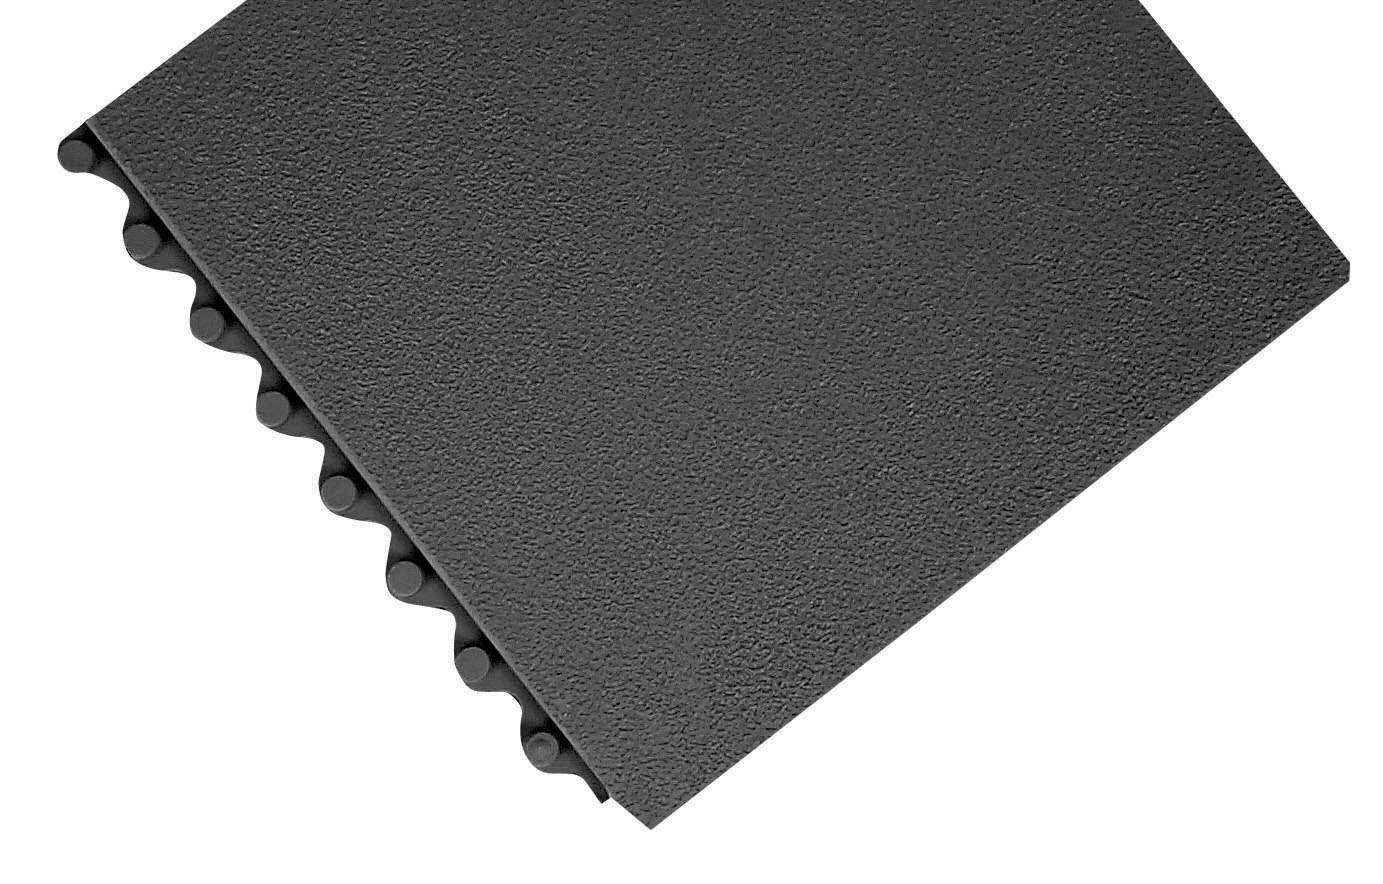 black heavy mats floor entrance commercial floors duty nationwide school sectors